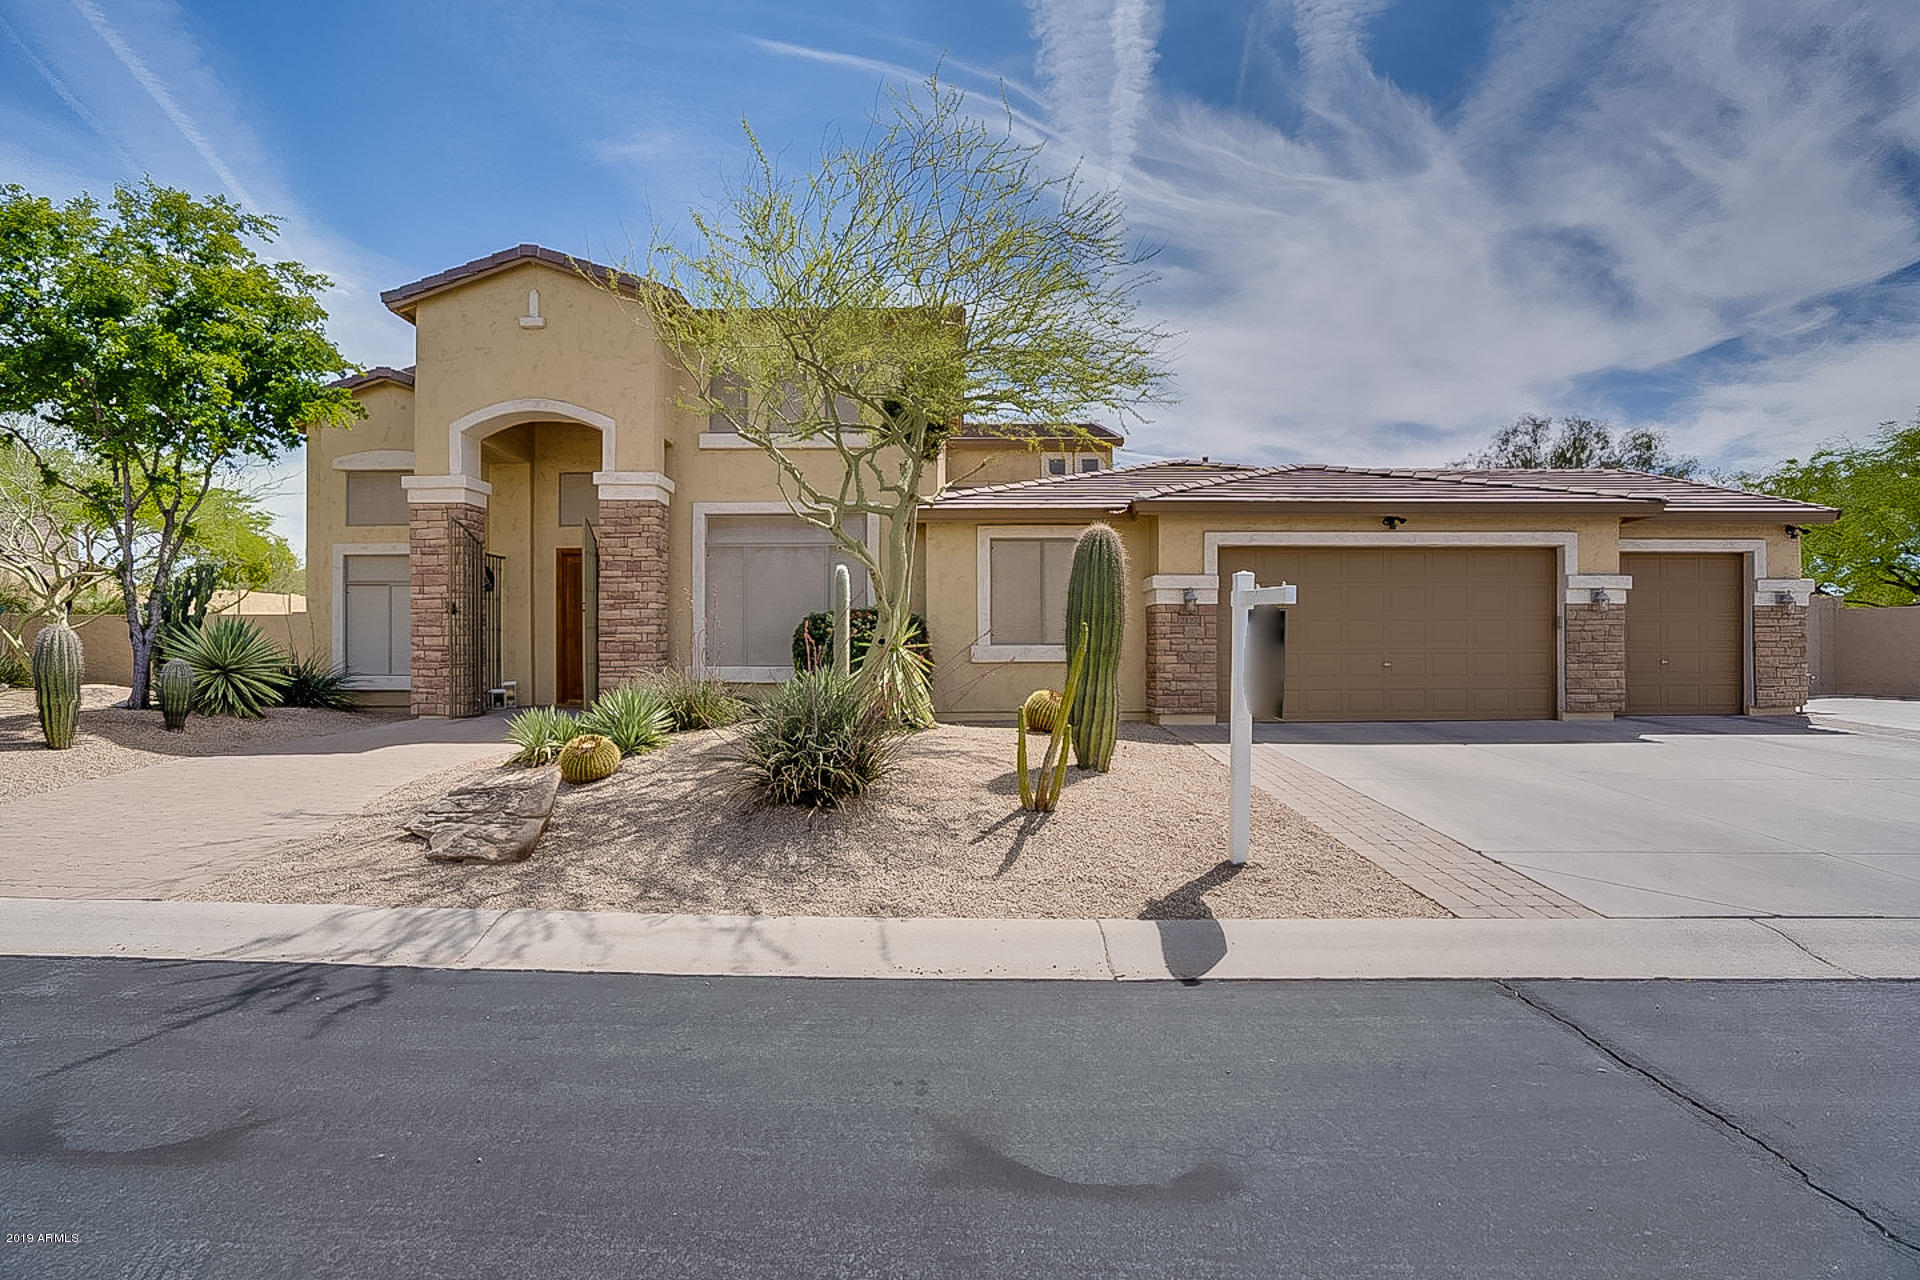 Photo of 2127 N HILLRIDGE --, Mesa, AZ 85207